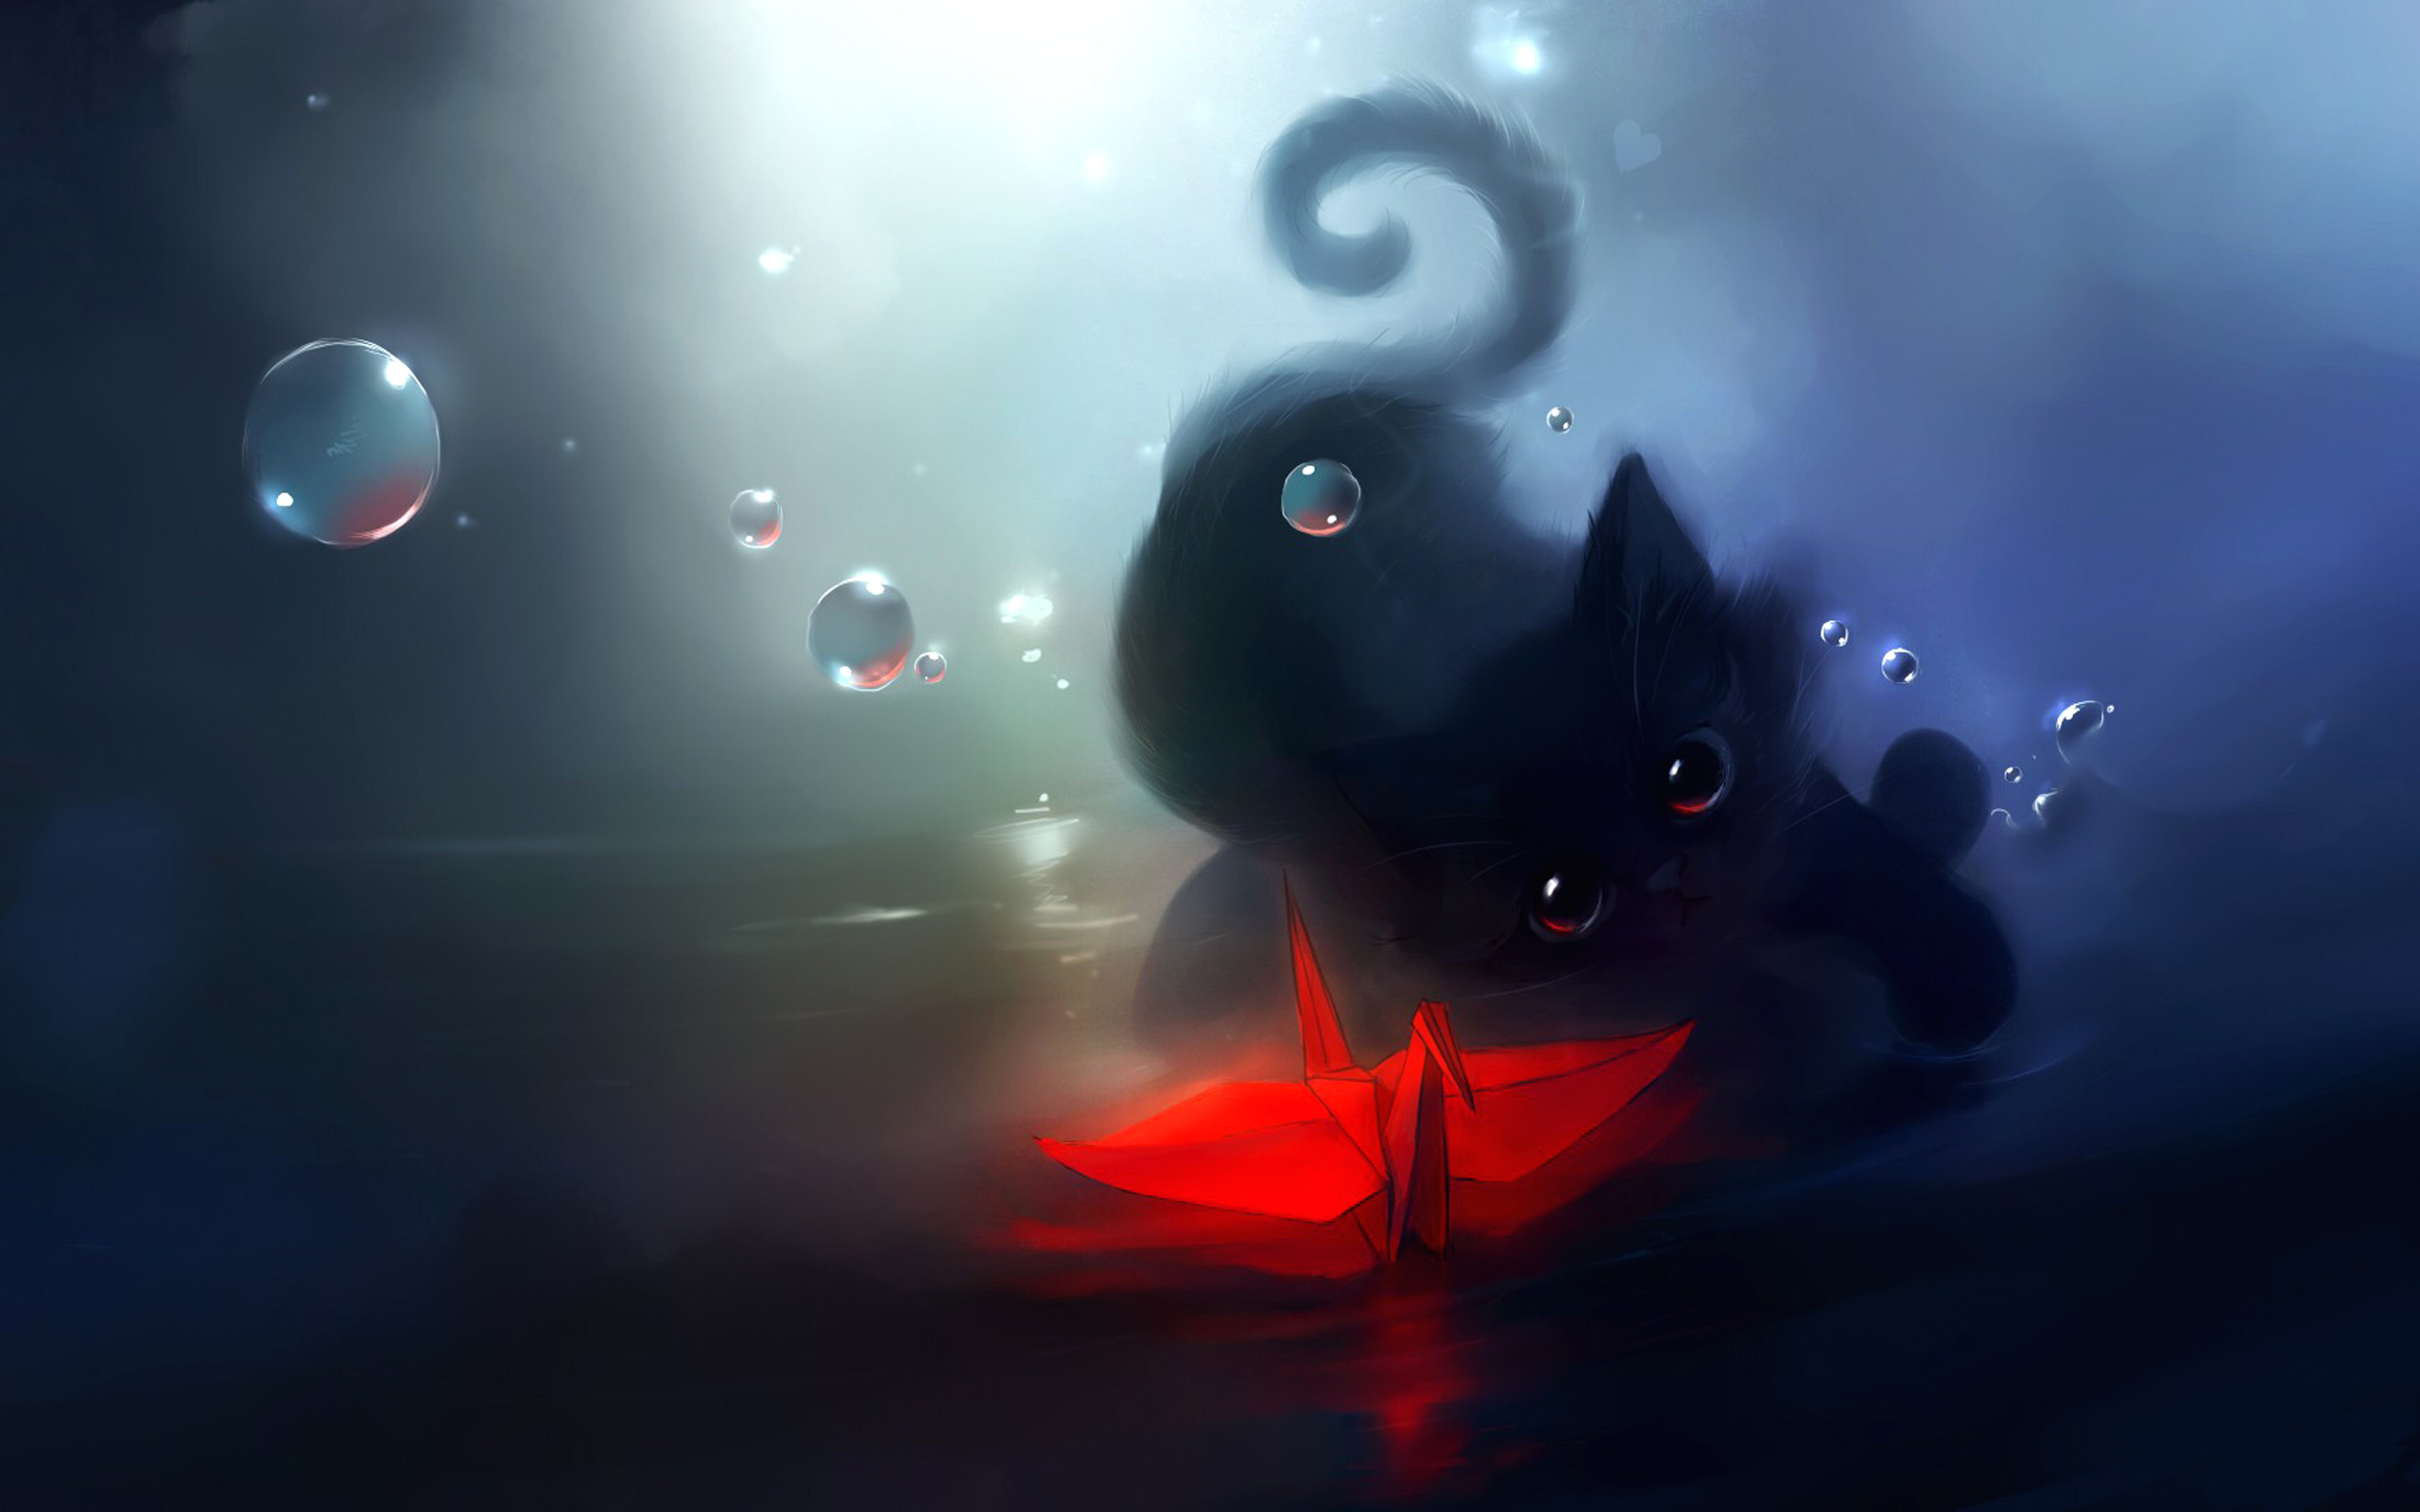 anime cat wallpaper (63+ images)